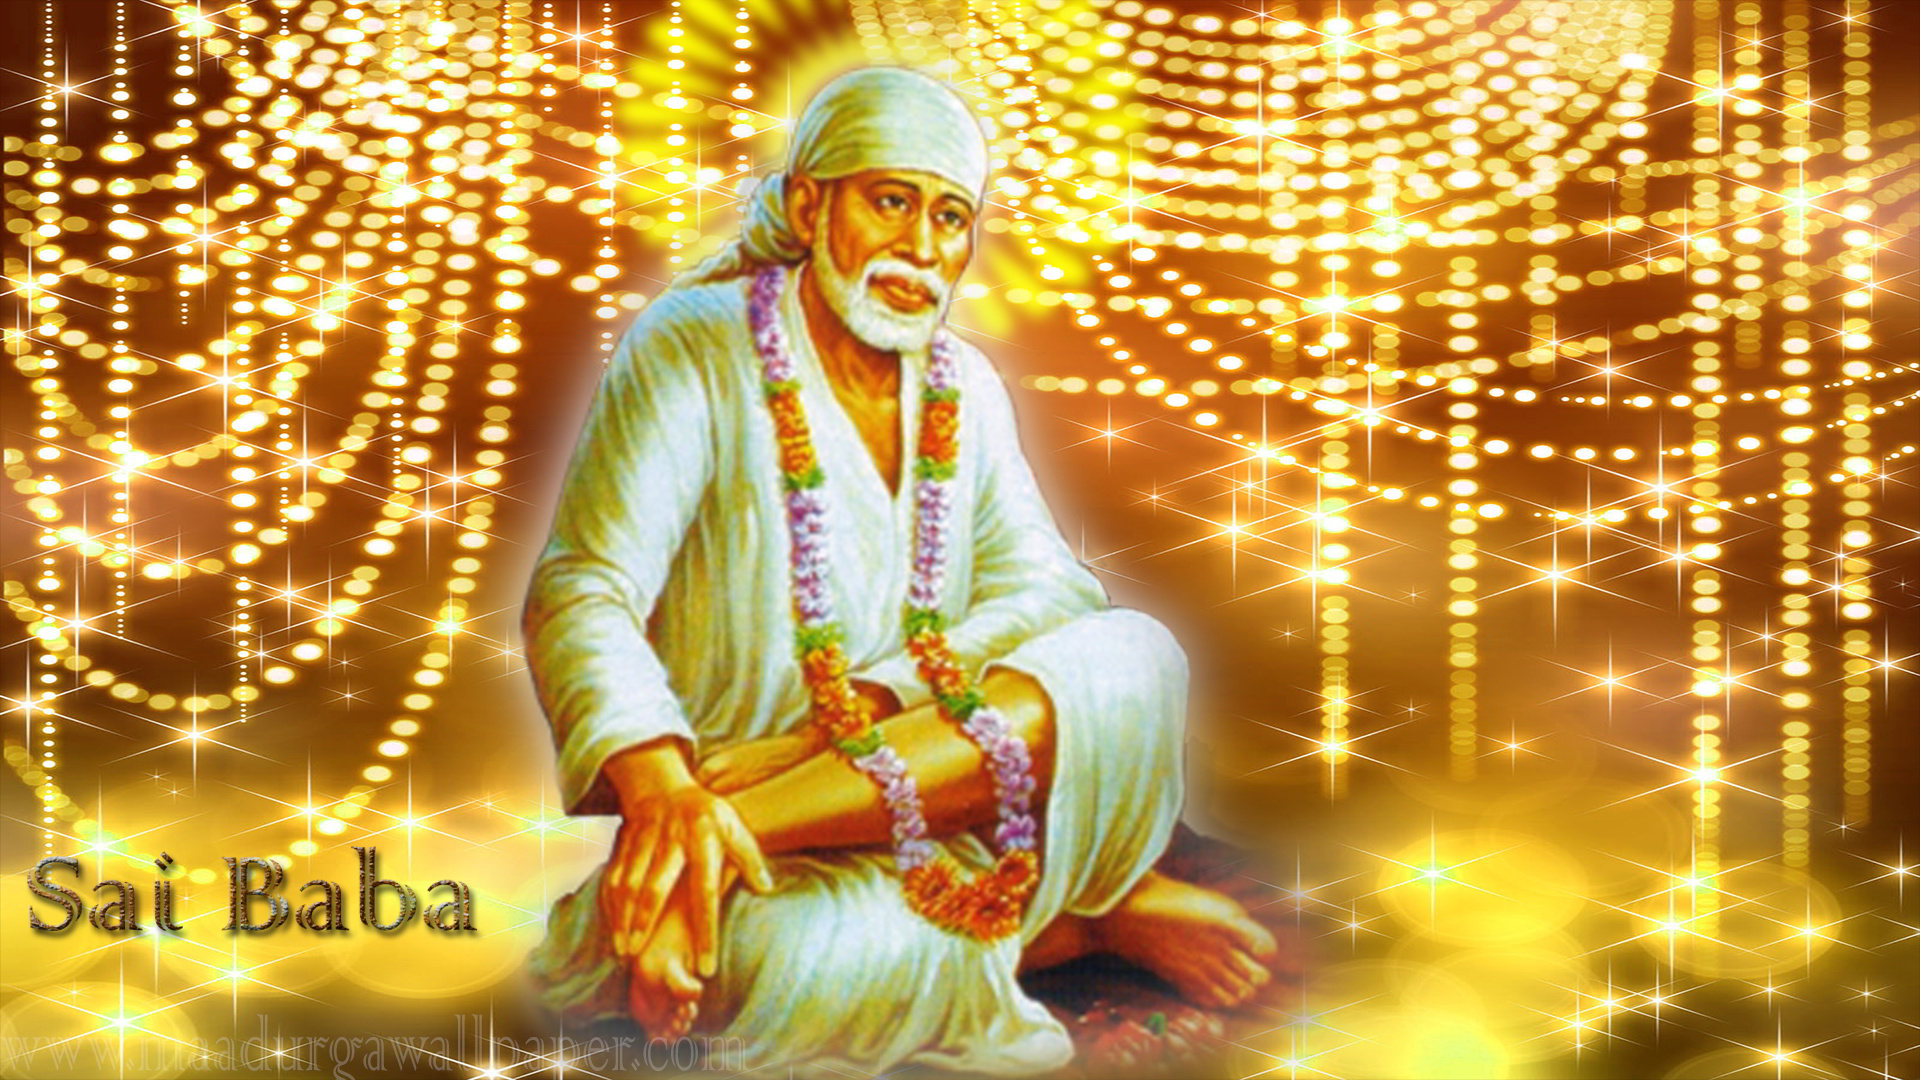 Sai Baba Hd 3d Wallpaper Download Download Sai Baba Wallpapers Gallery